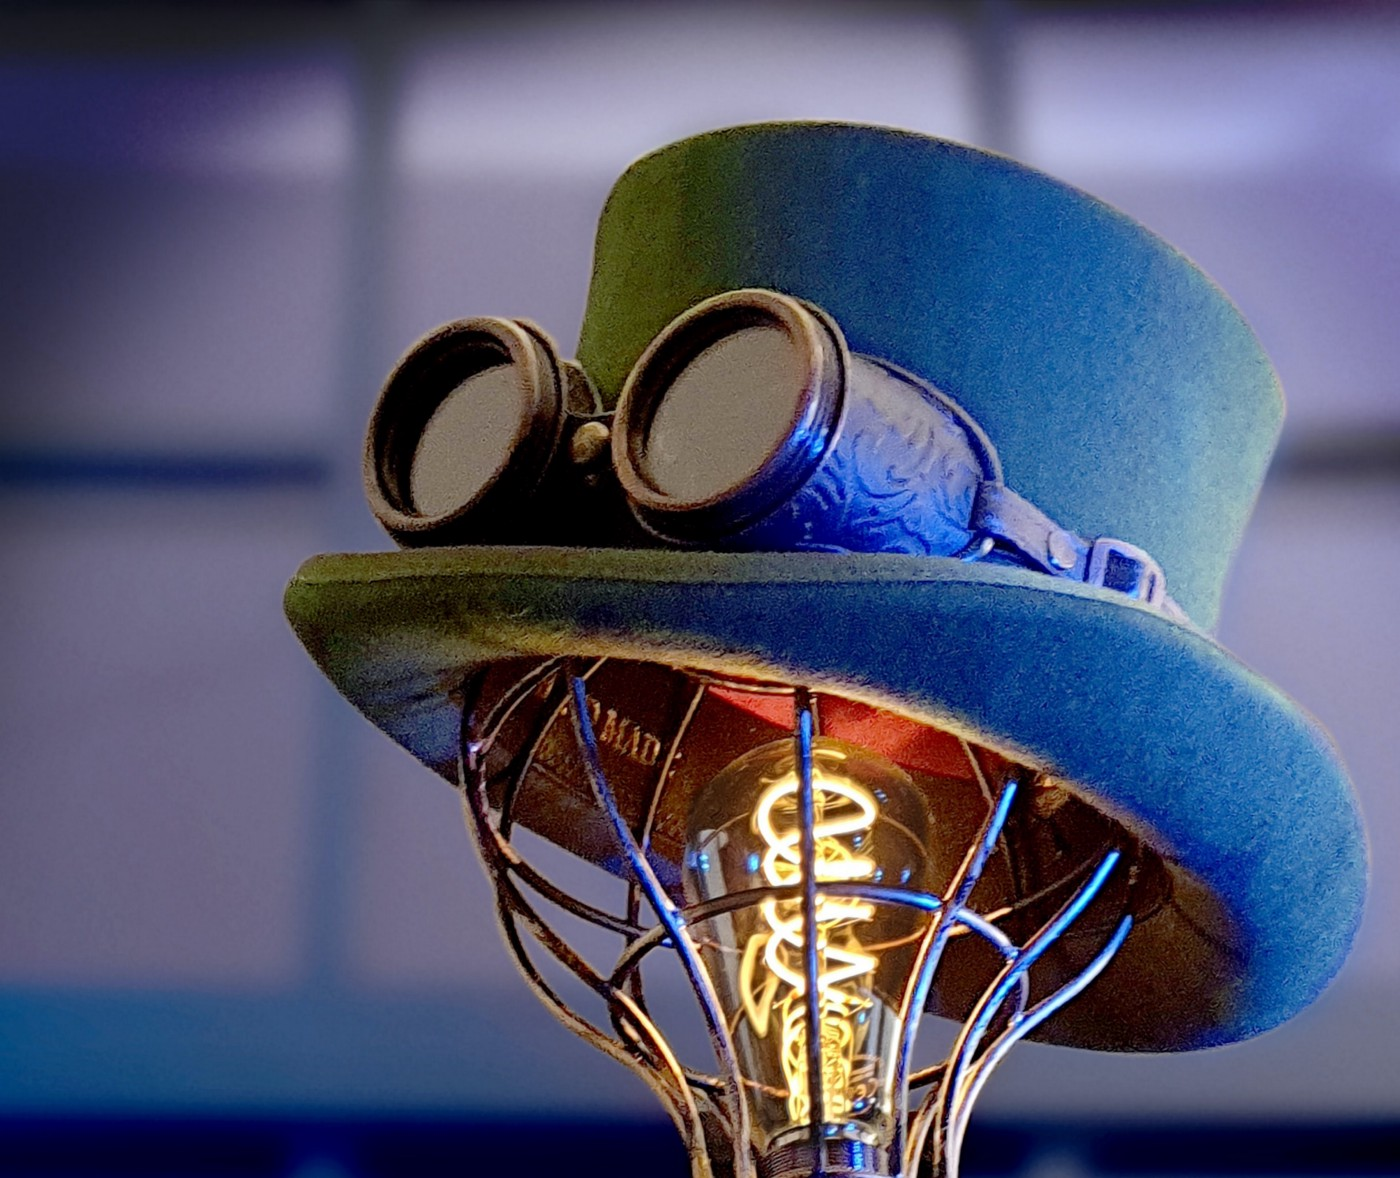 Steampunk hat and goggles sit atop a wiry lightbulb